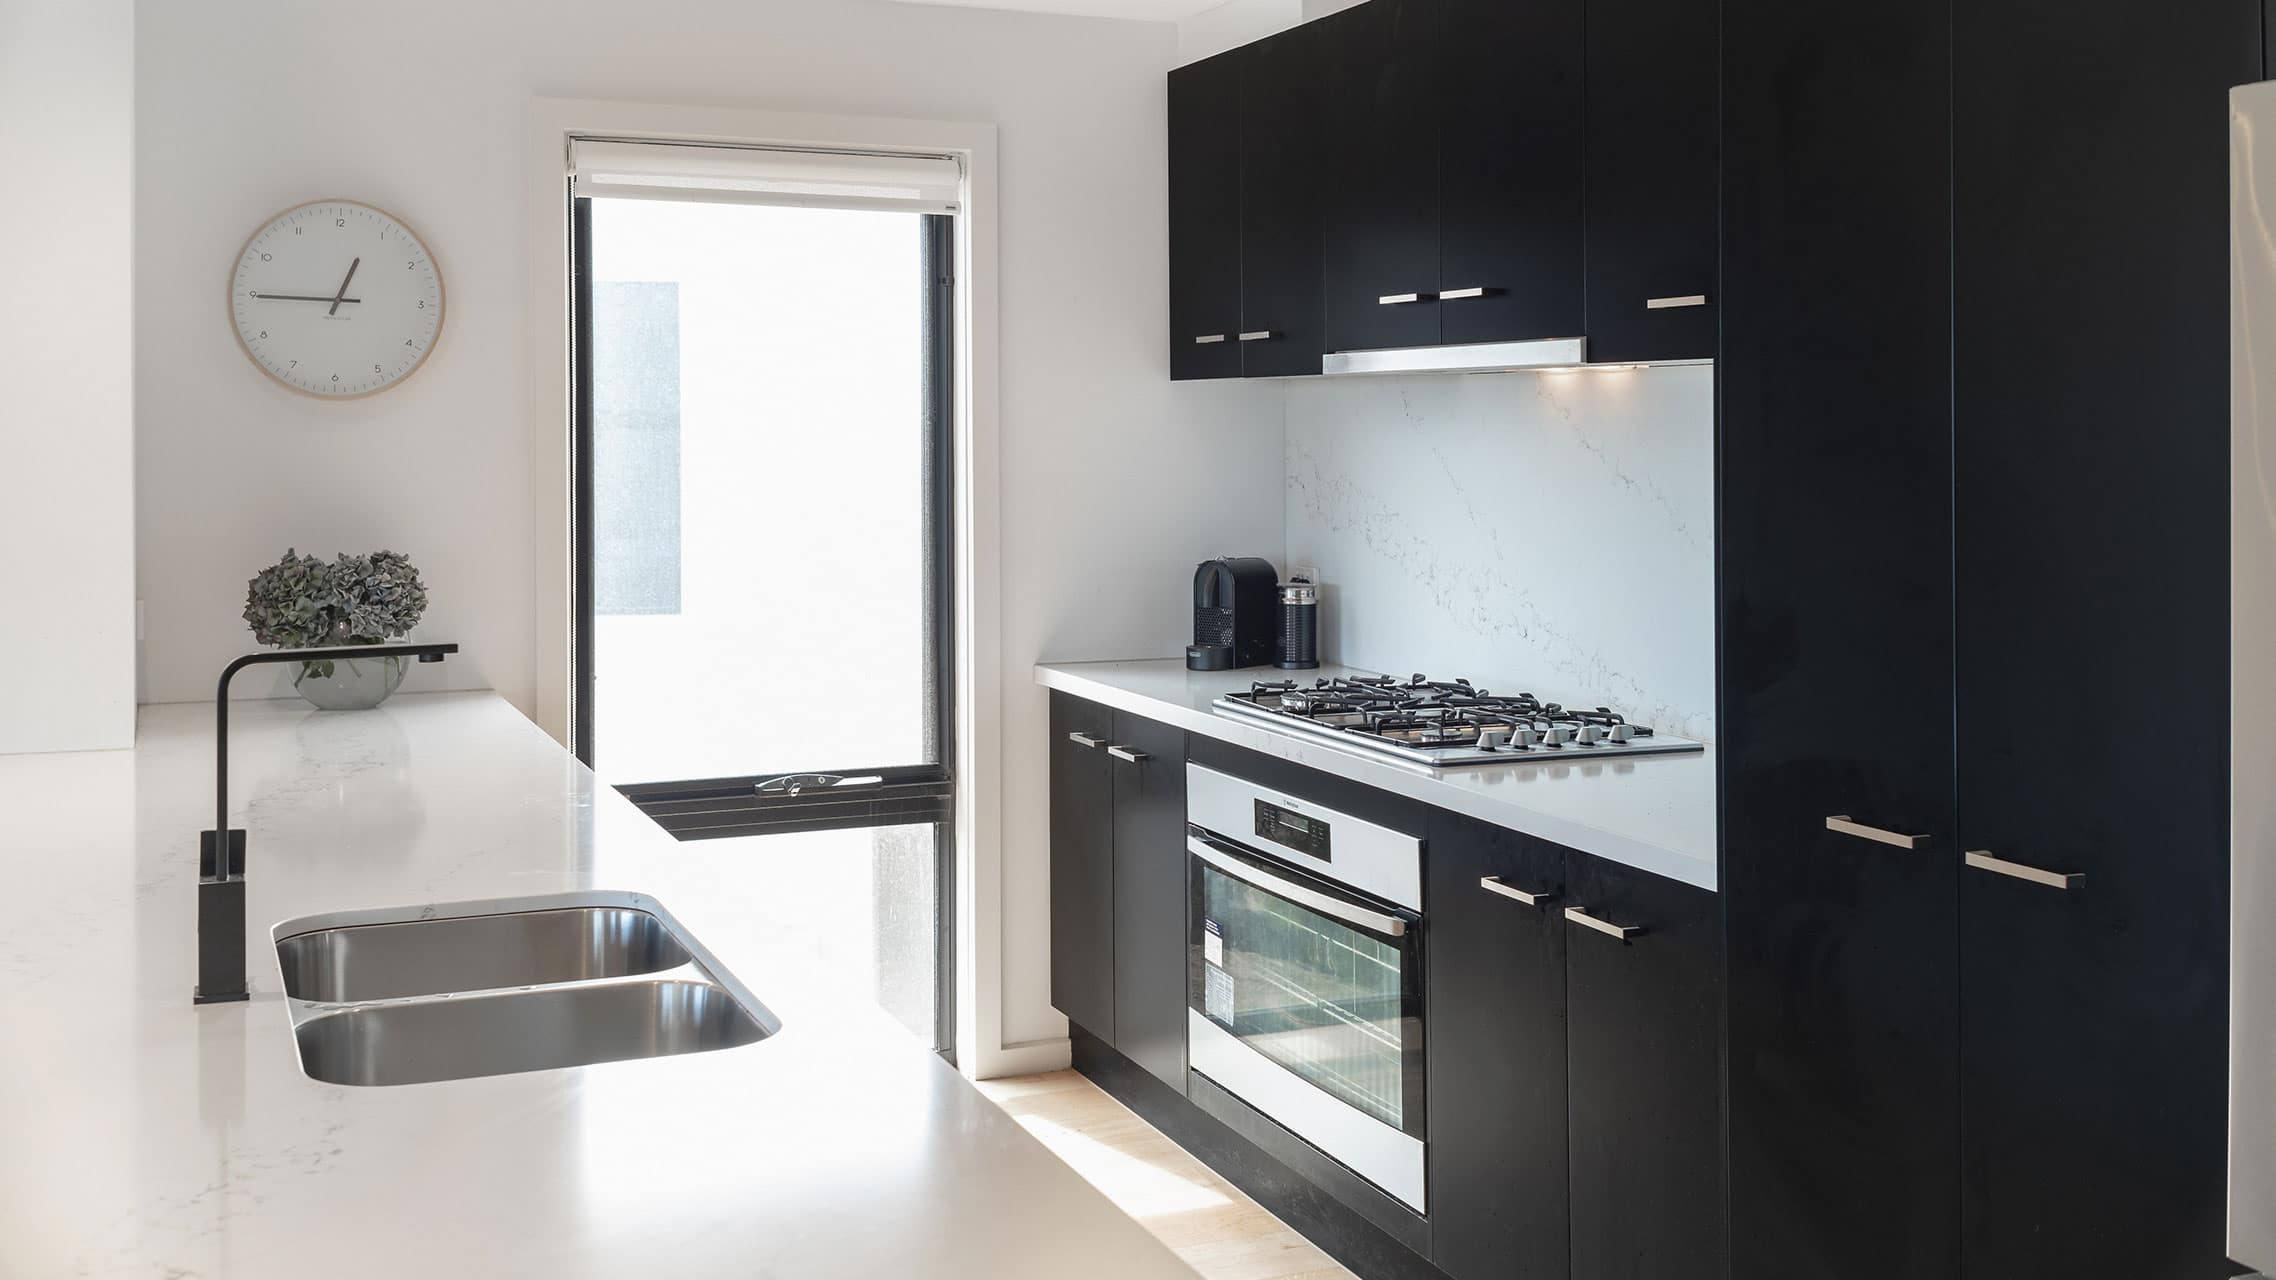 Black Aluminium Awning Window in a kitchen